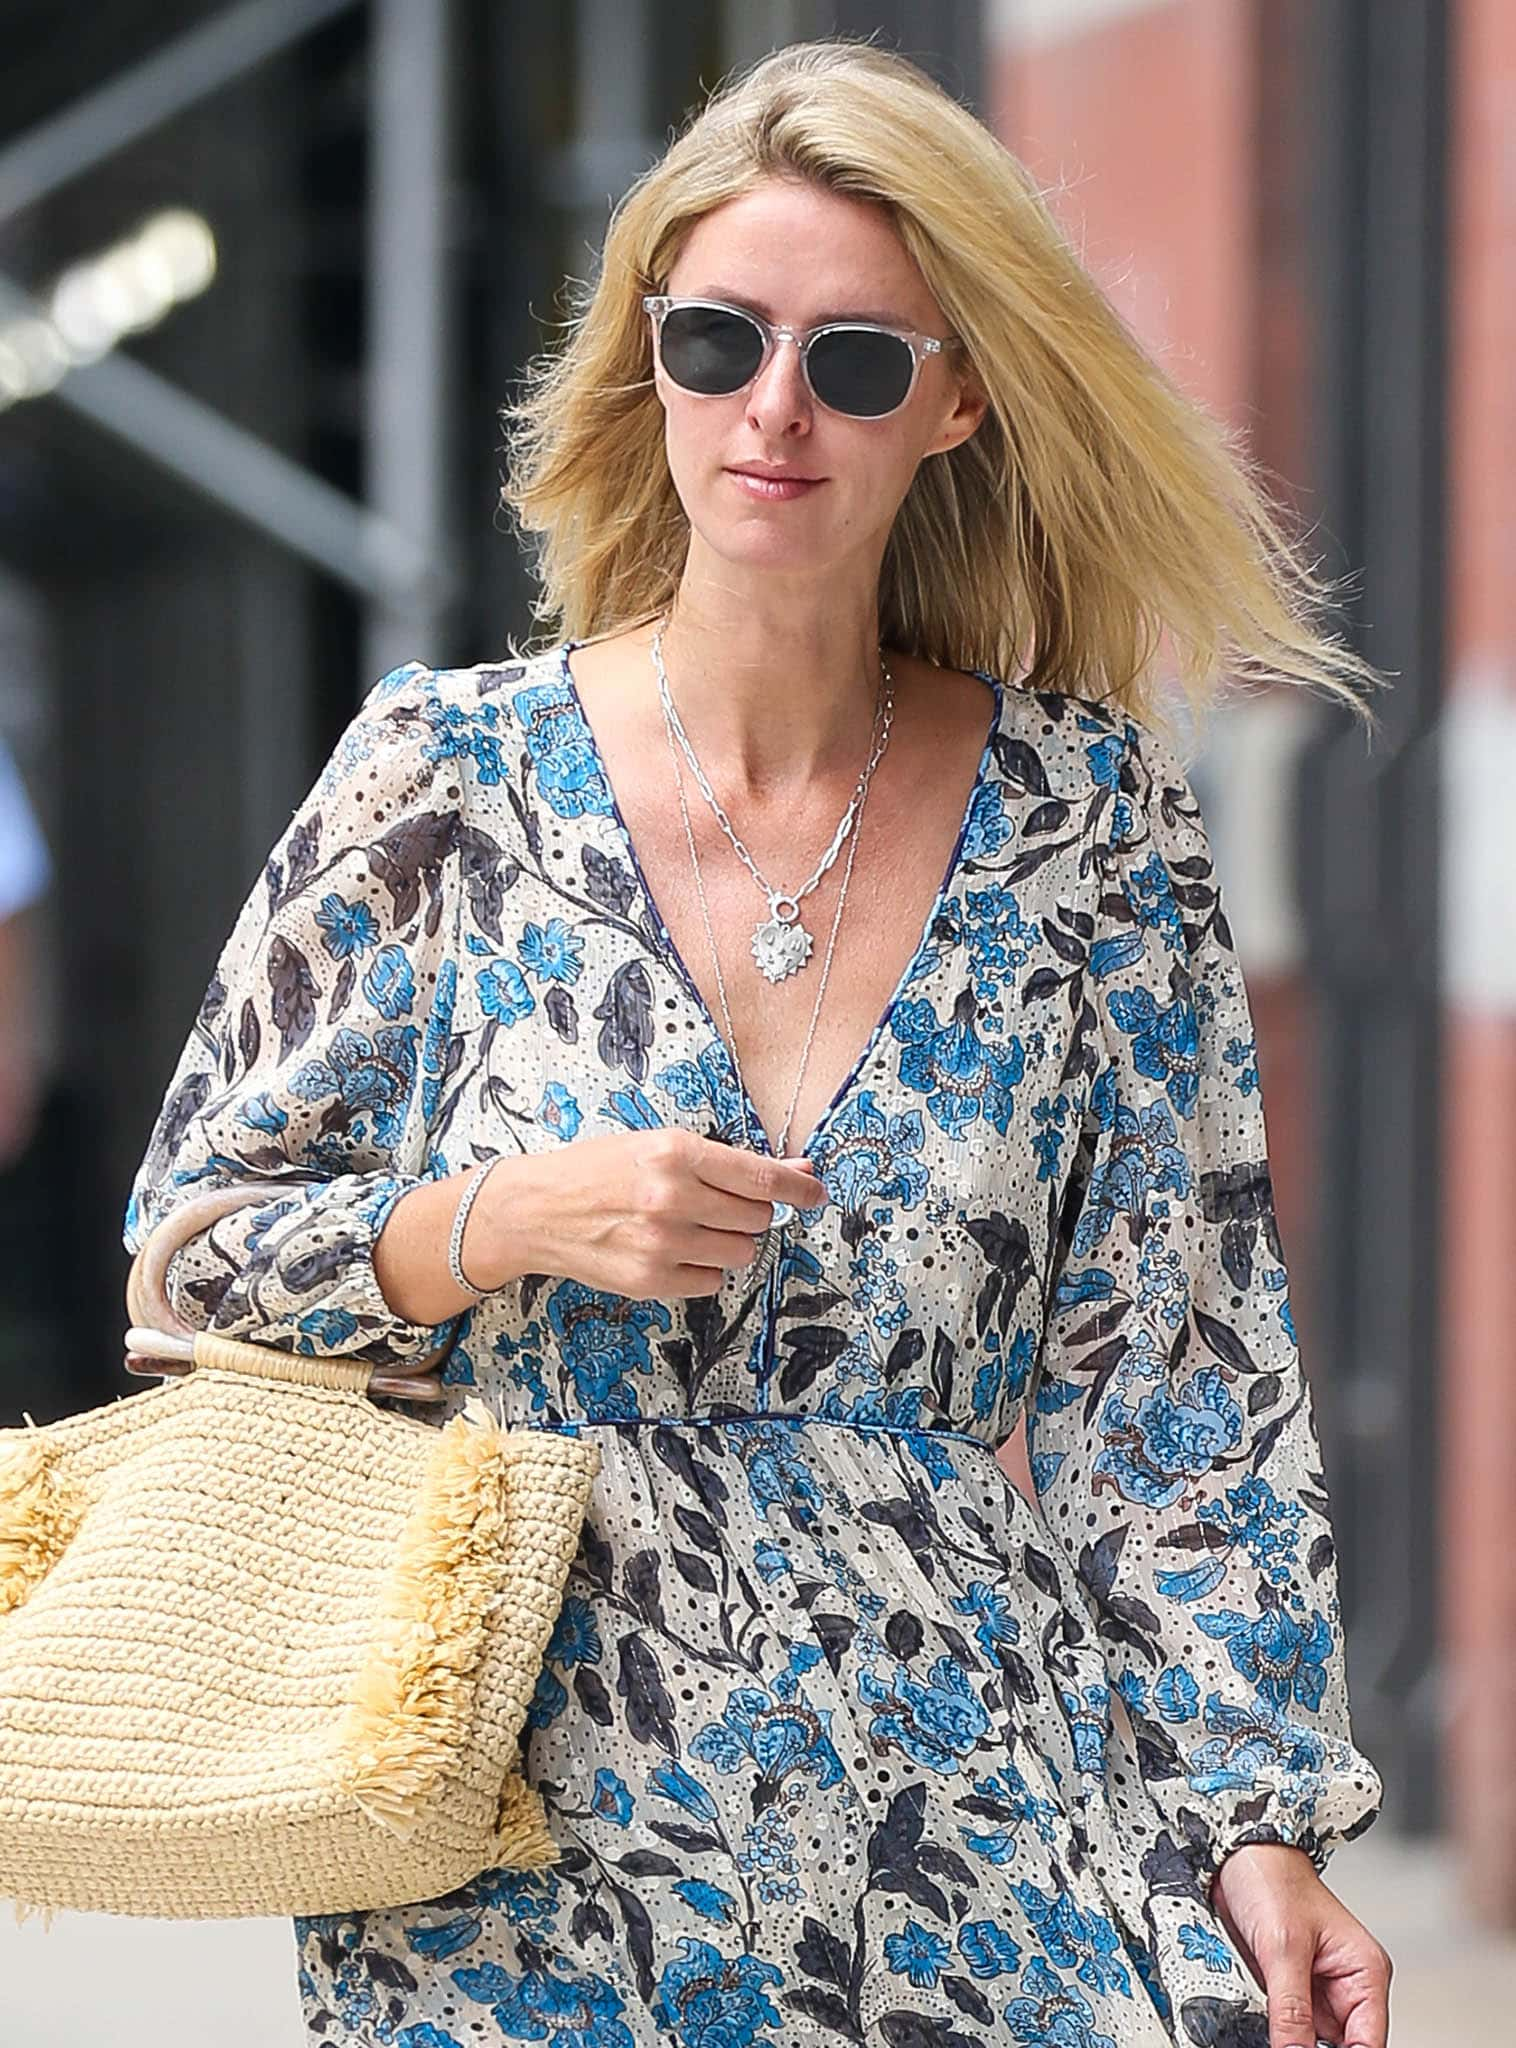 Nicky Hilton wears barely-there makeup with a side-swept hairstyle